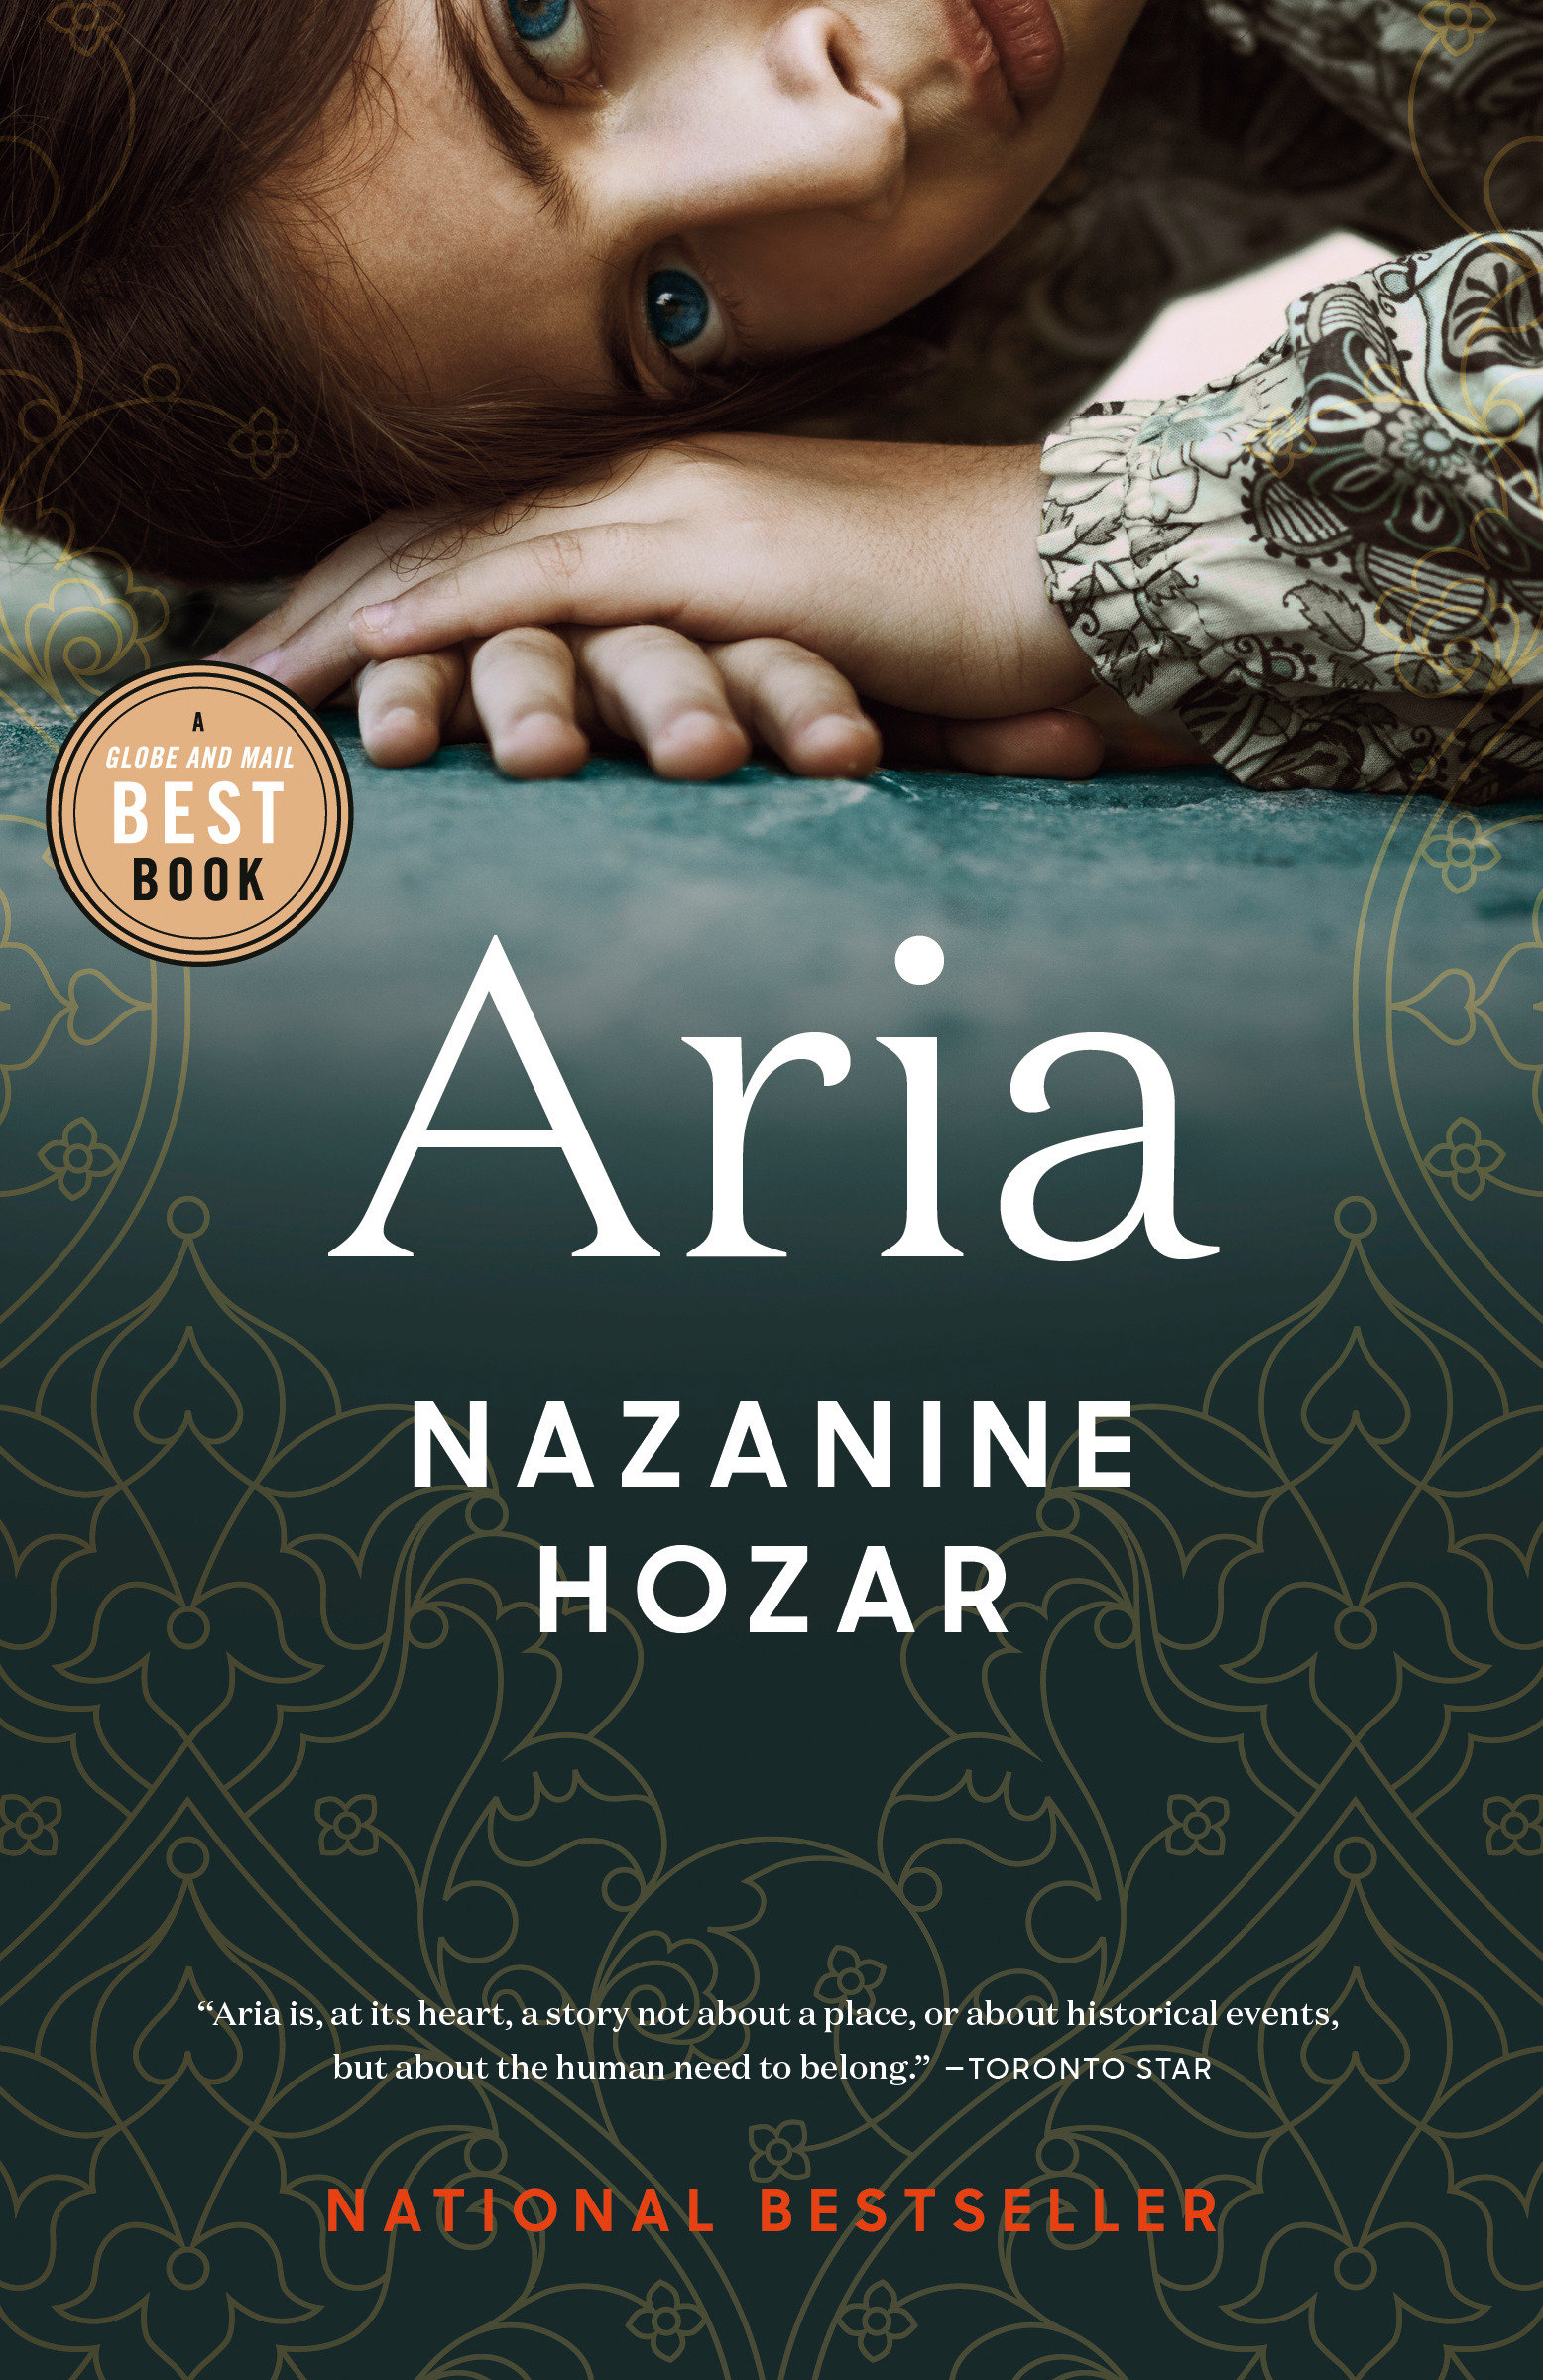 Cover Image of Aria